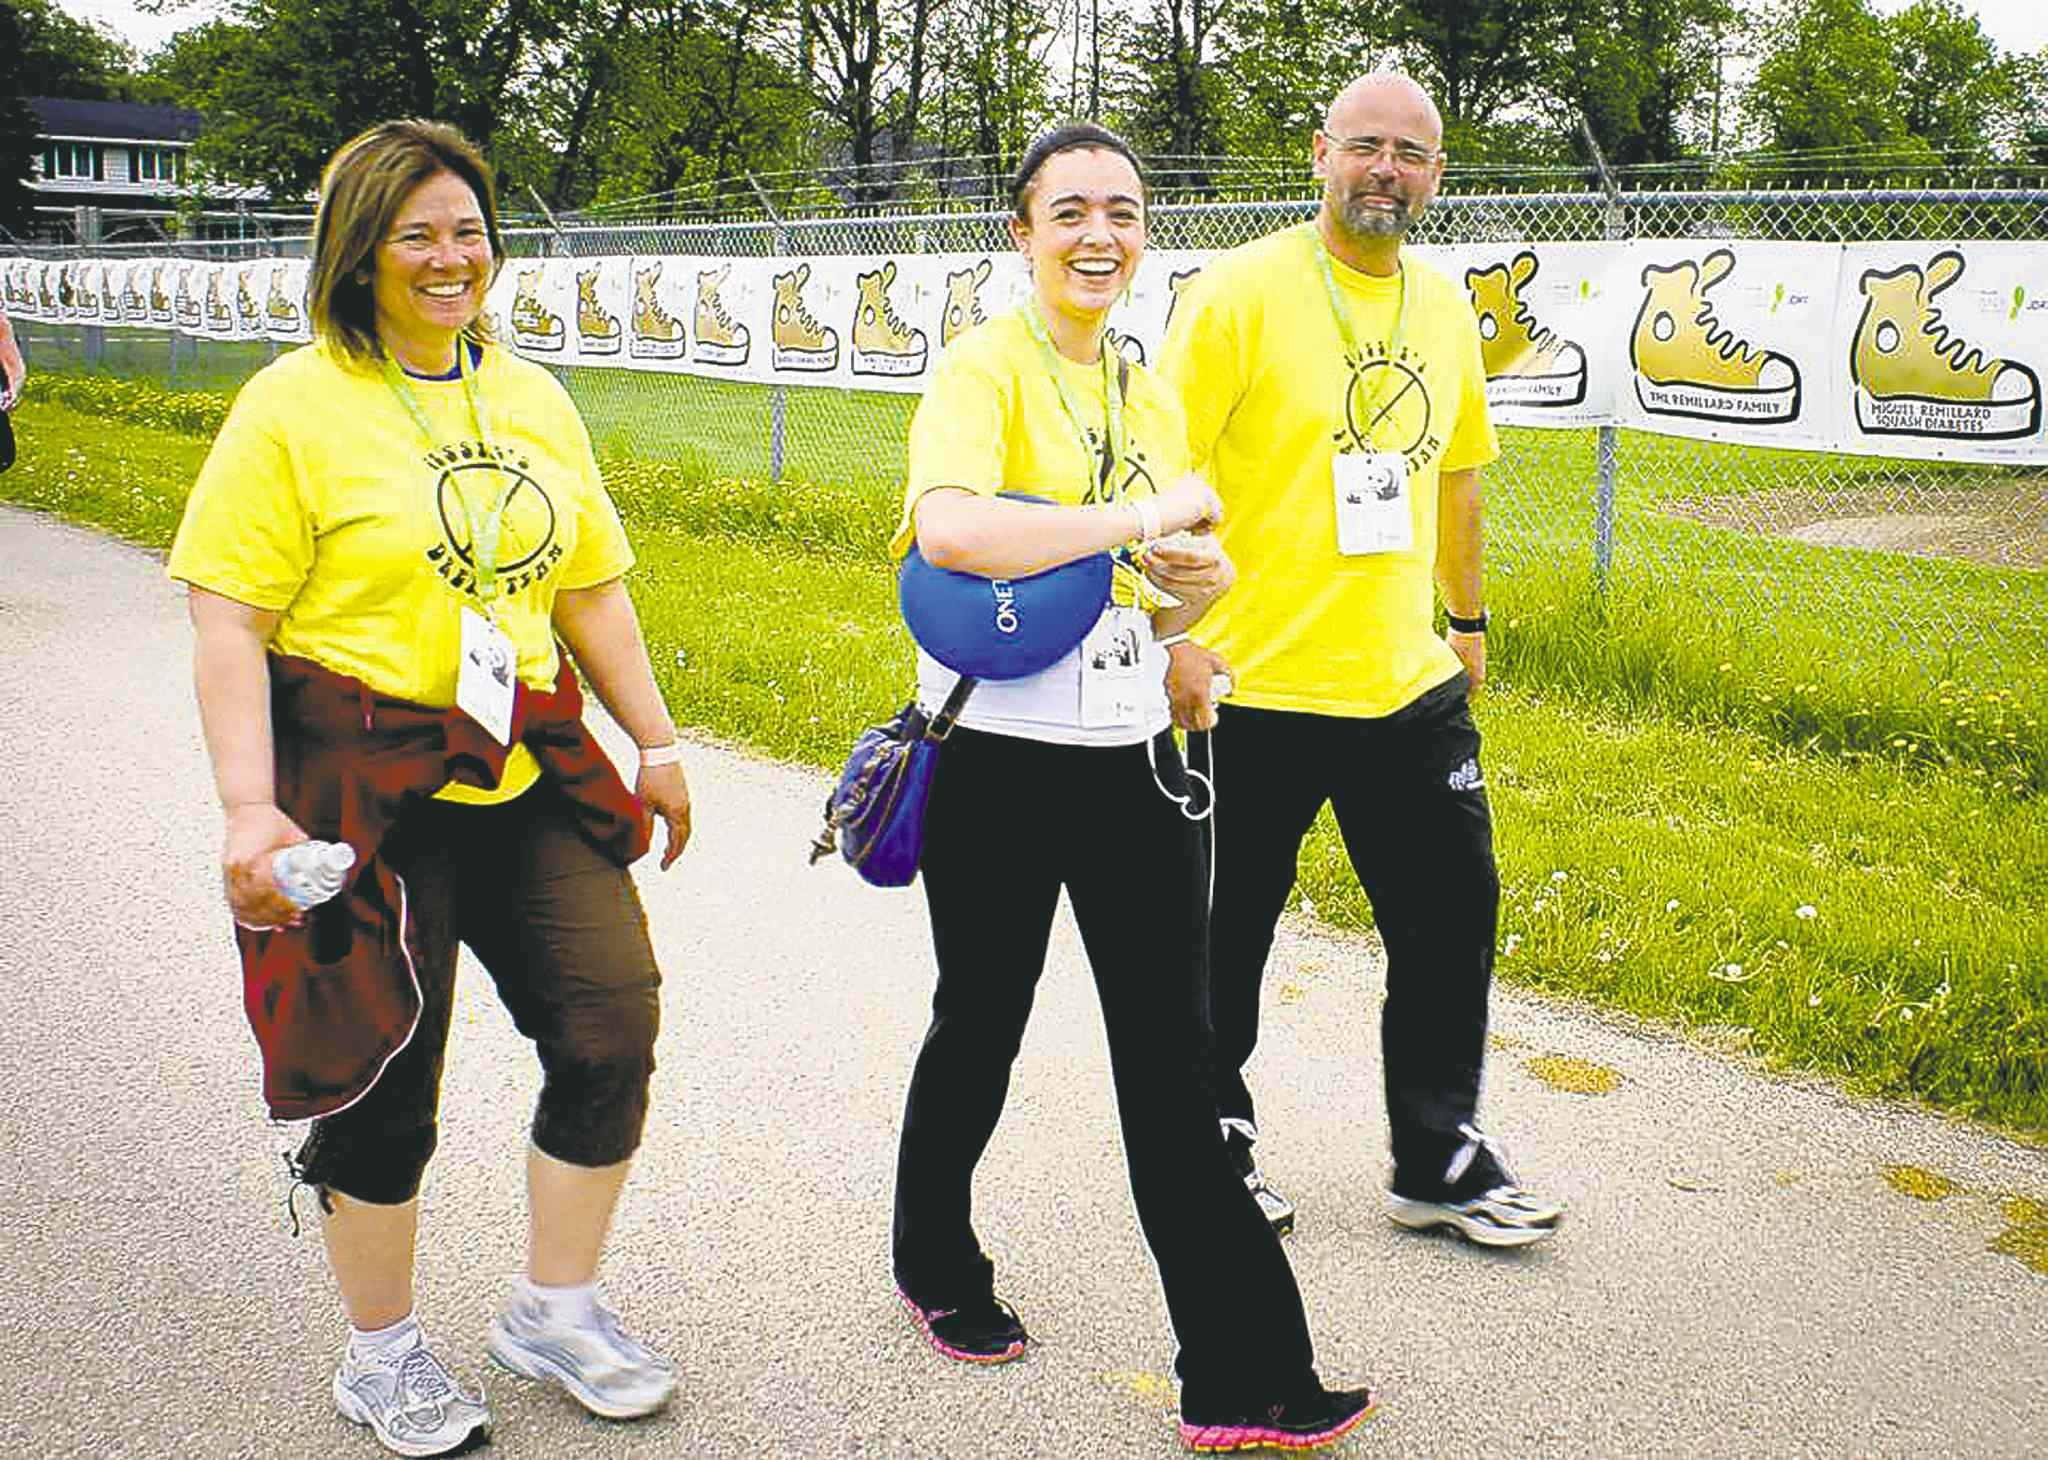 Jessica Williams (centre) and parents Tammy and Mike Williams in the 2013 Telus Walk to Cure Diabetes.